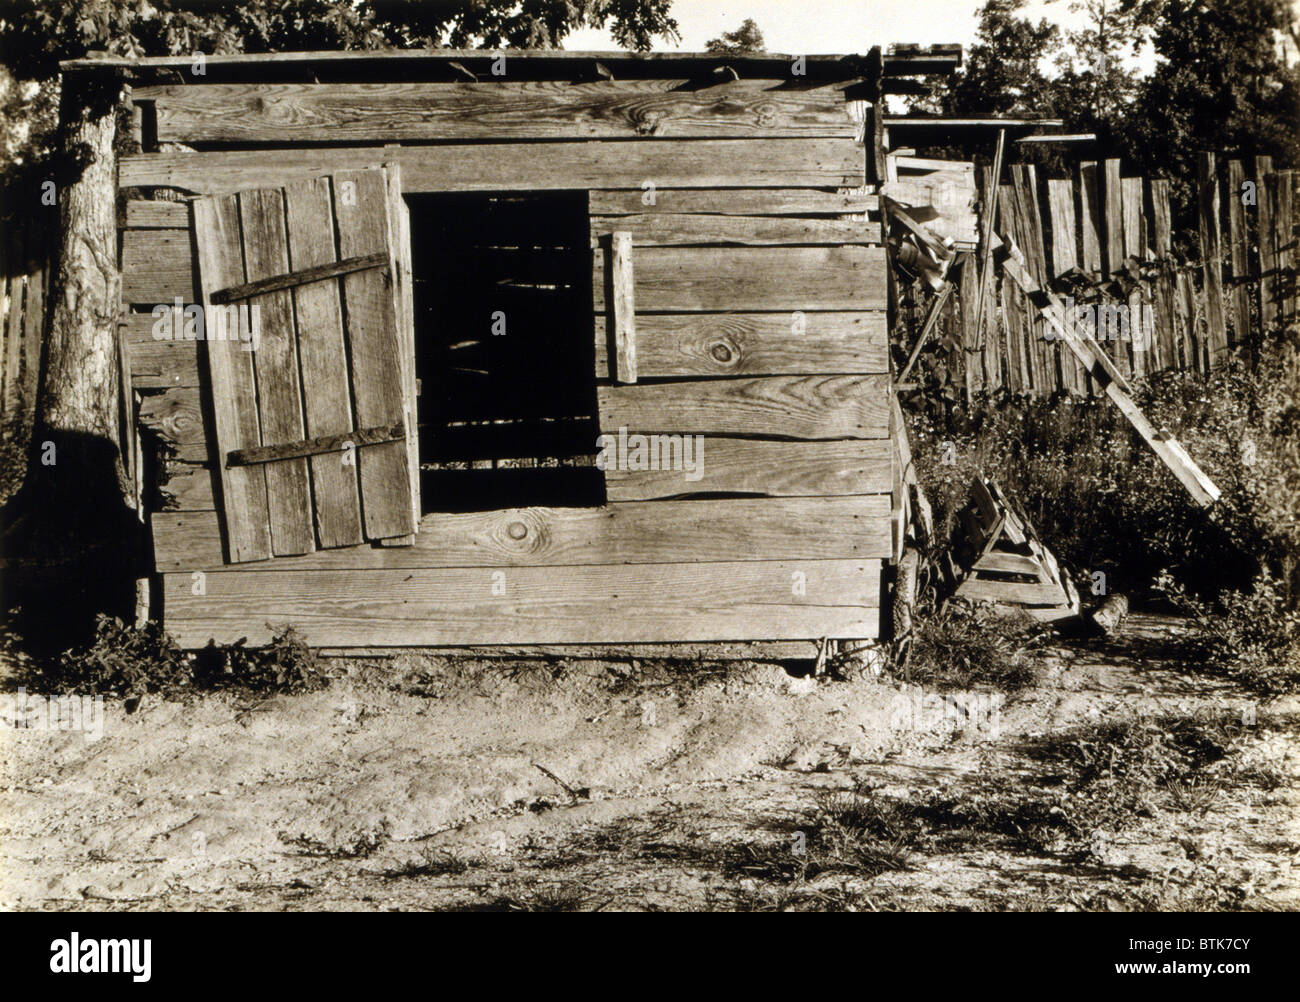 Chicken coop on the farm of Floyd Burroughs, cotton sharecropper, Hale County, Alabama. Published in the book, 'Let - Stock Image